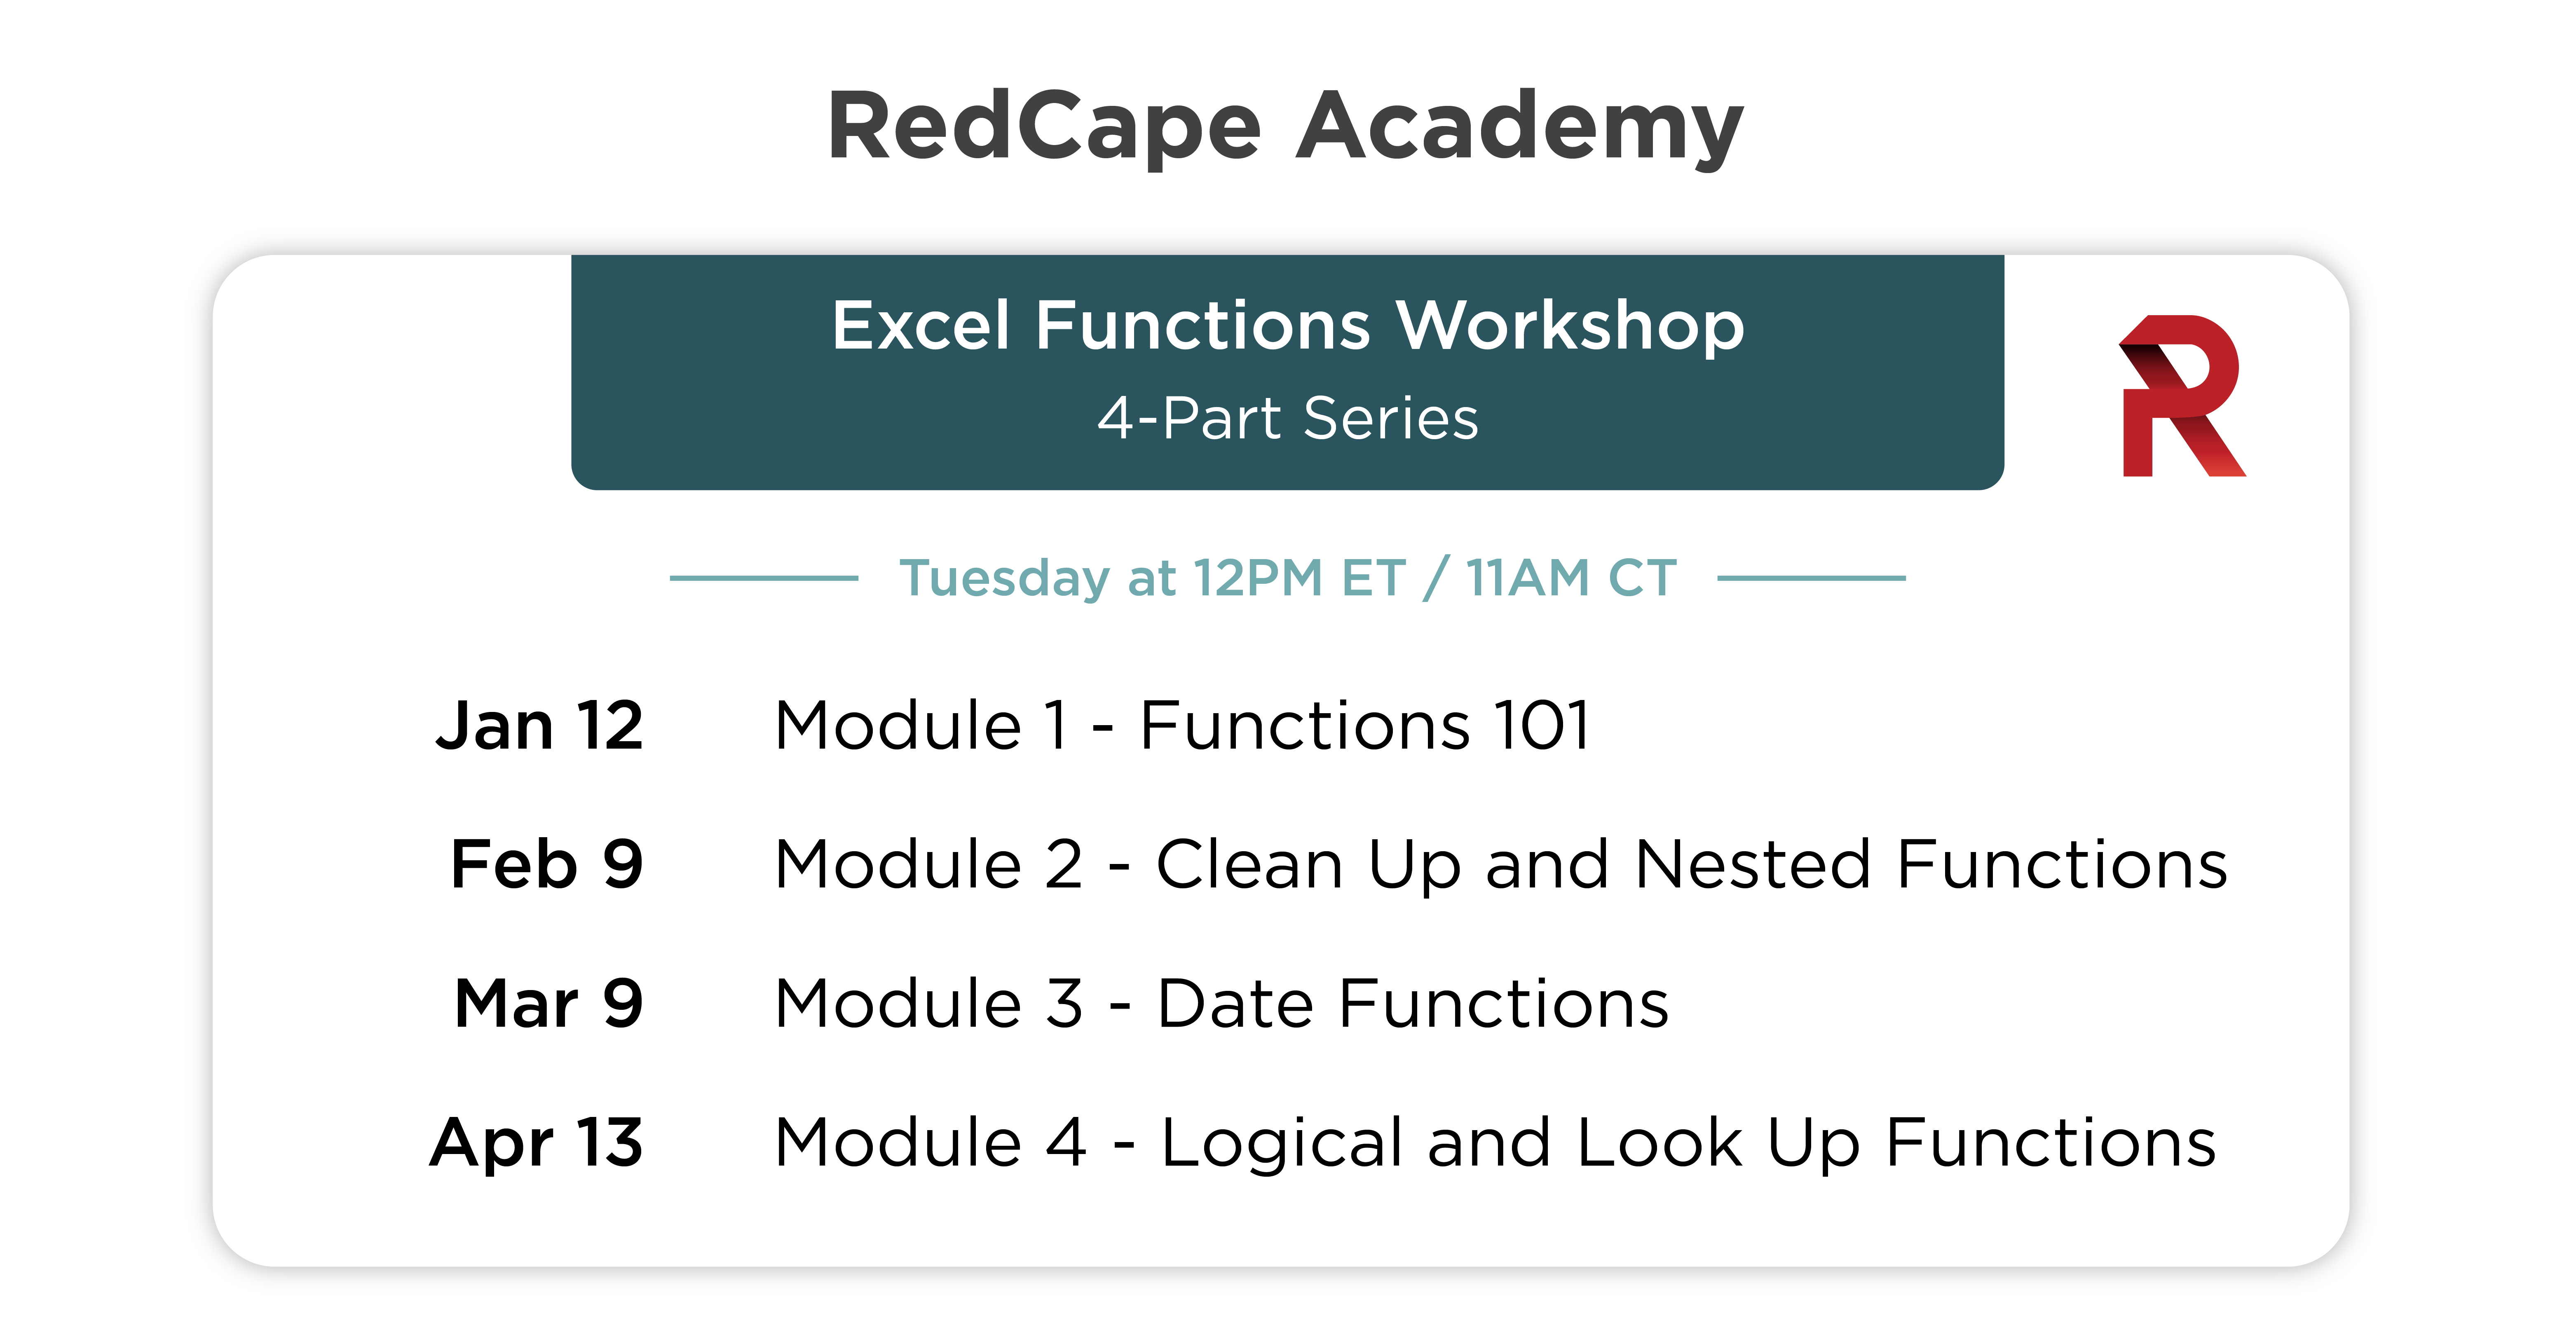 Excel Functions Workshop schedule for 2021 through April.